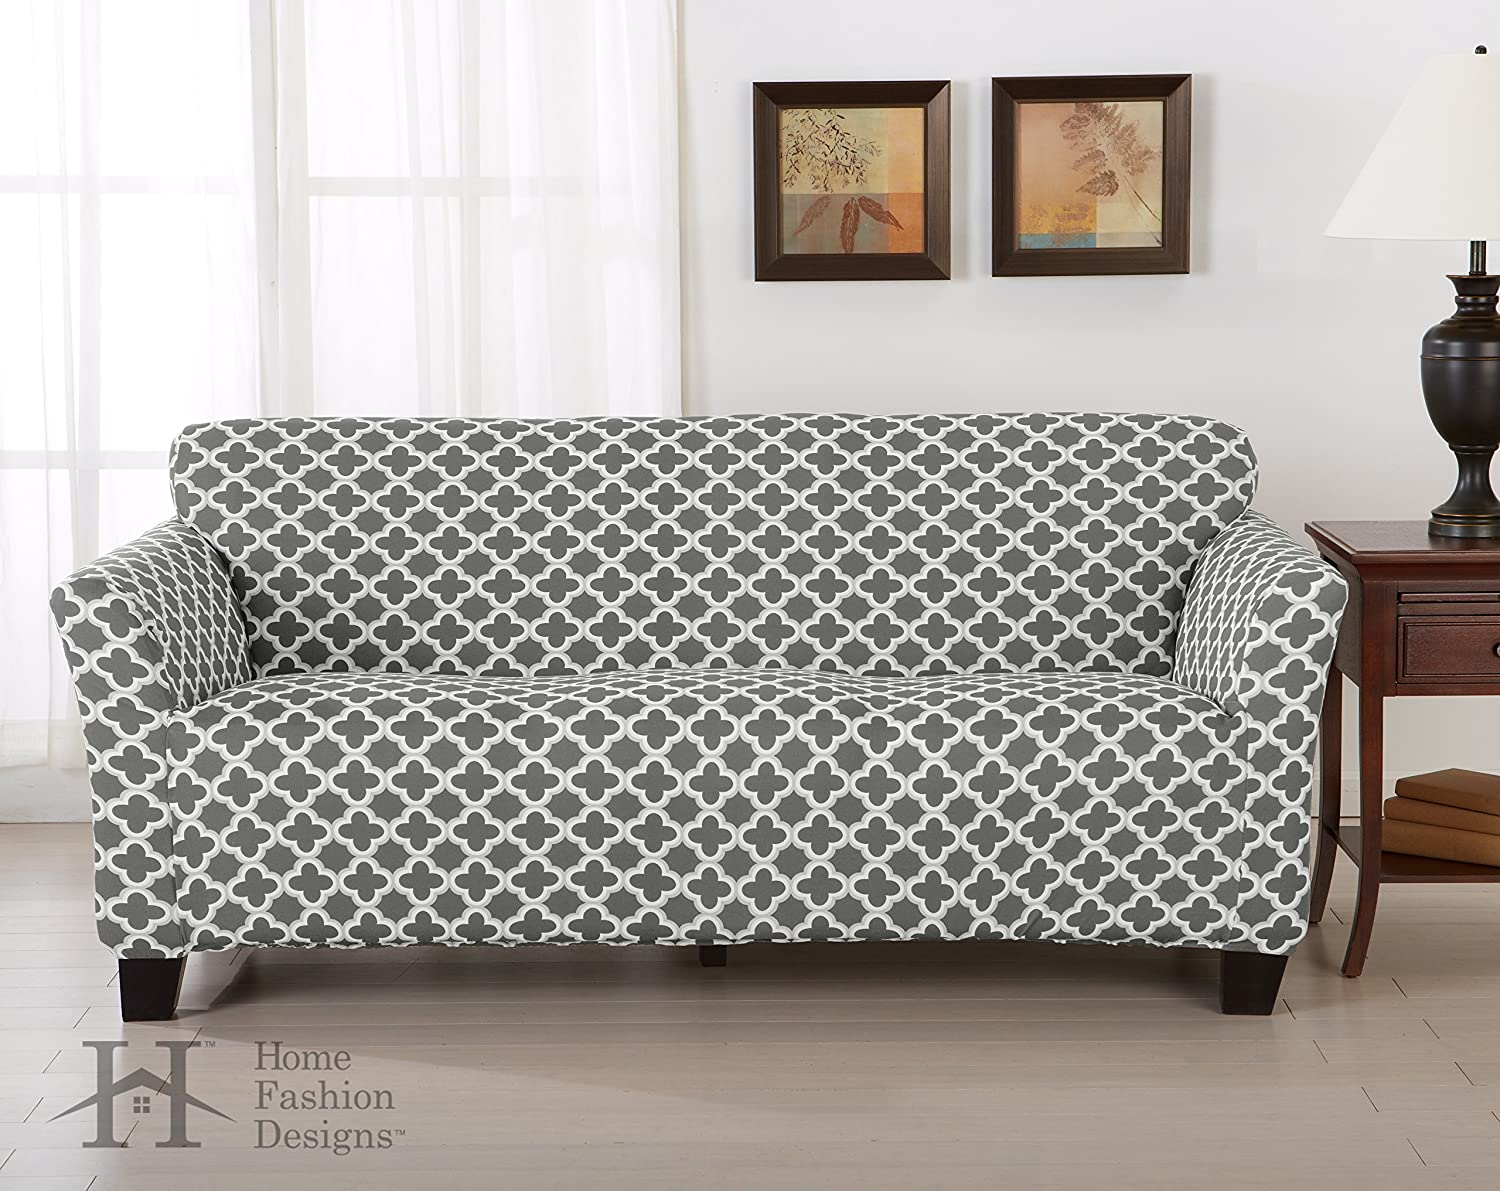 and sofa the cadsden of good at plough slipcover ideas couches design image